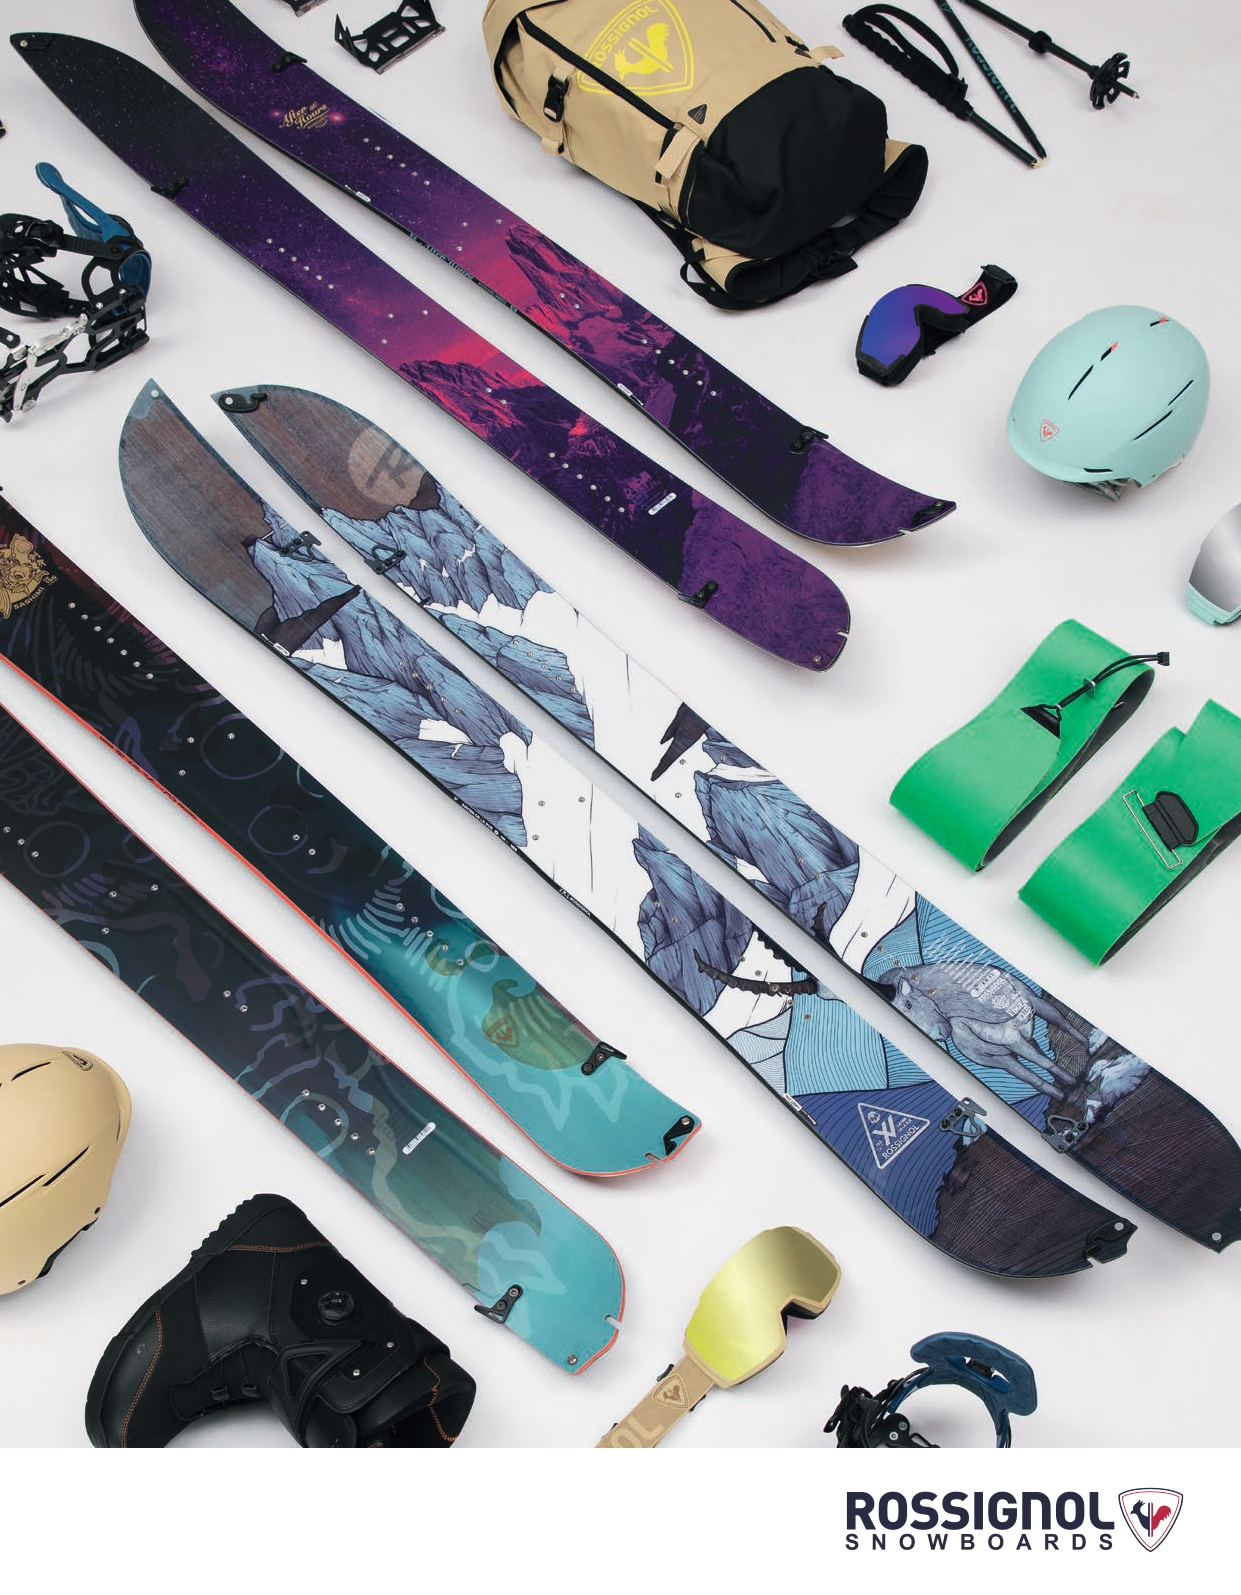 105 rossignol snowboards and goggles